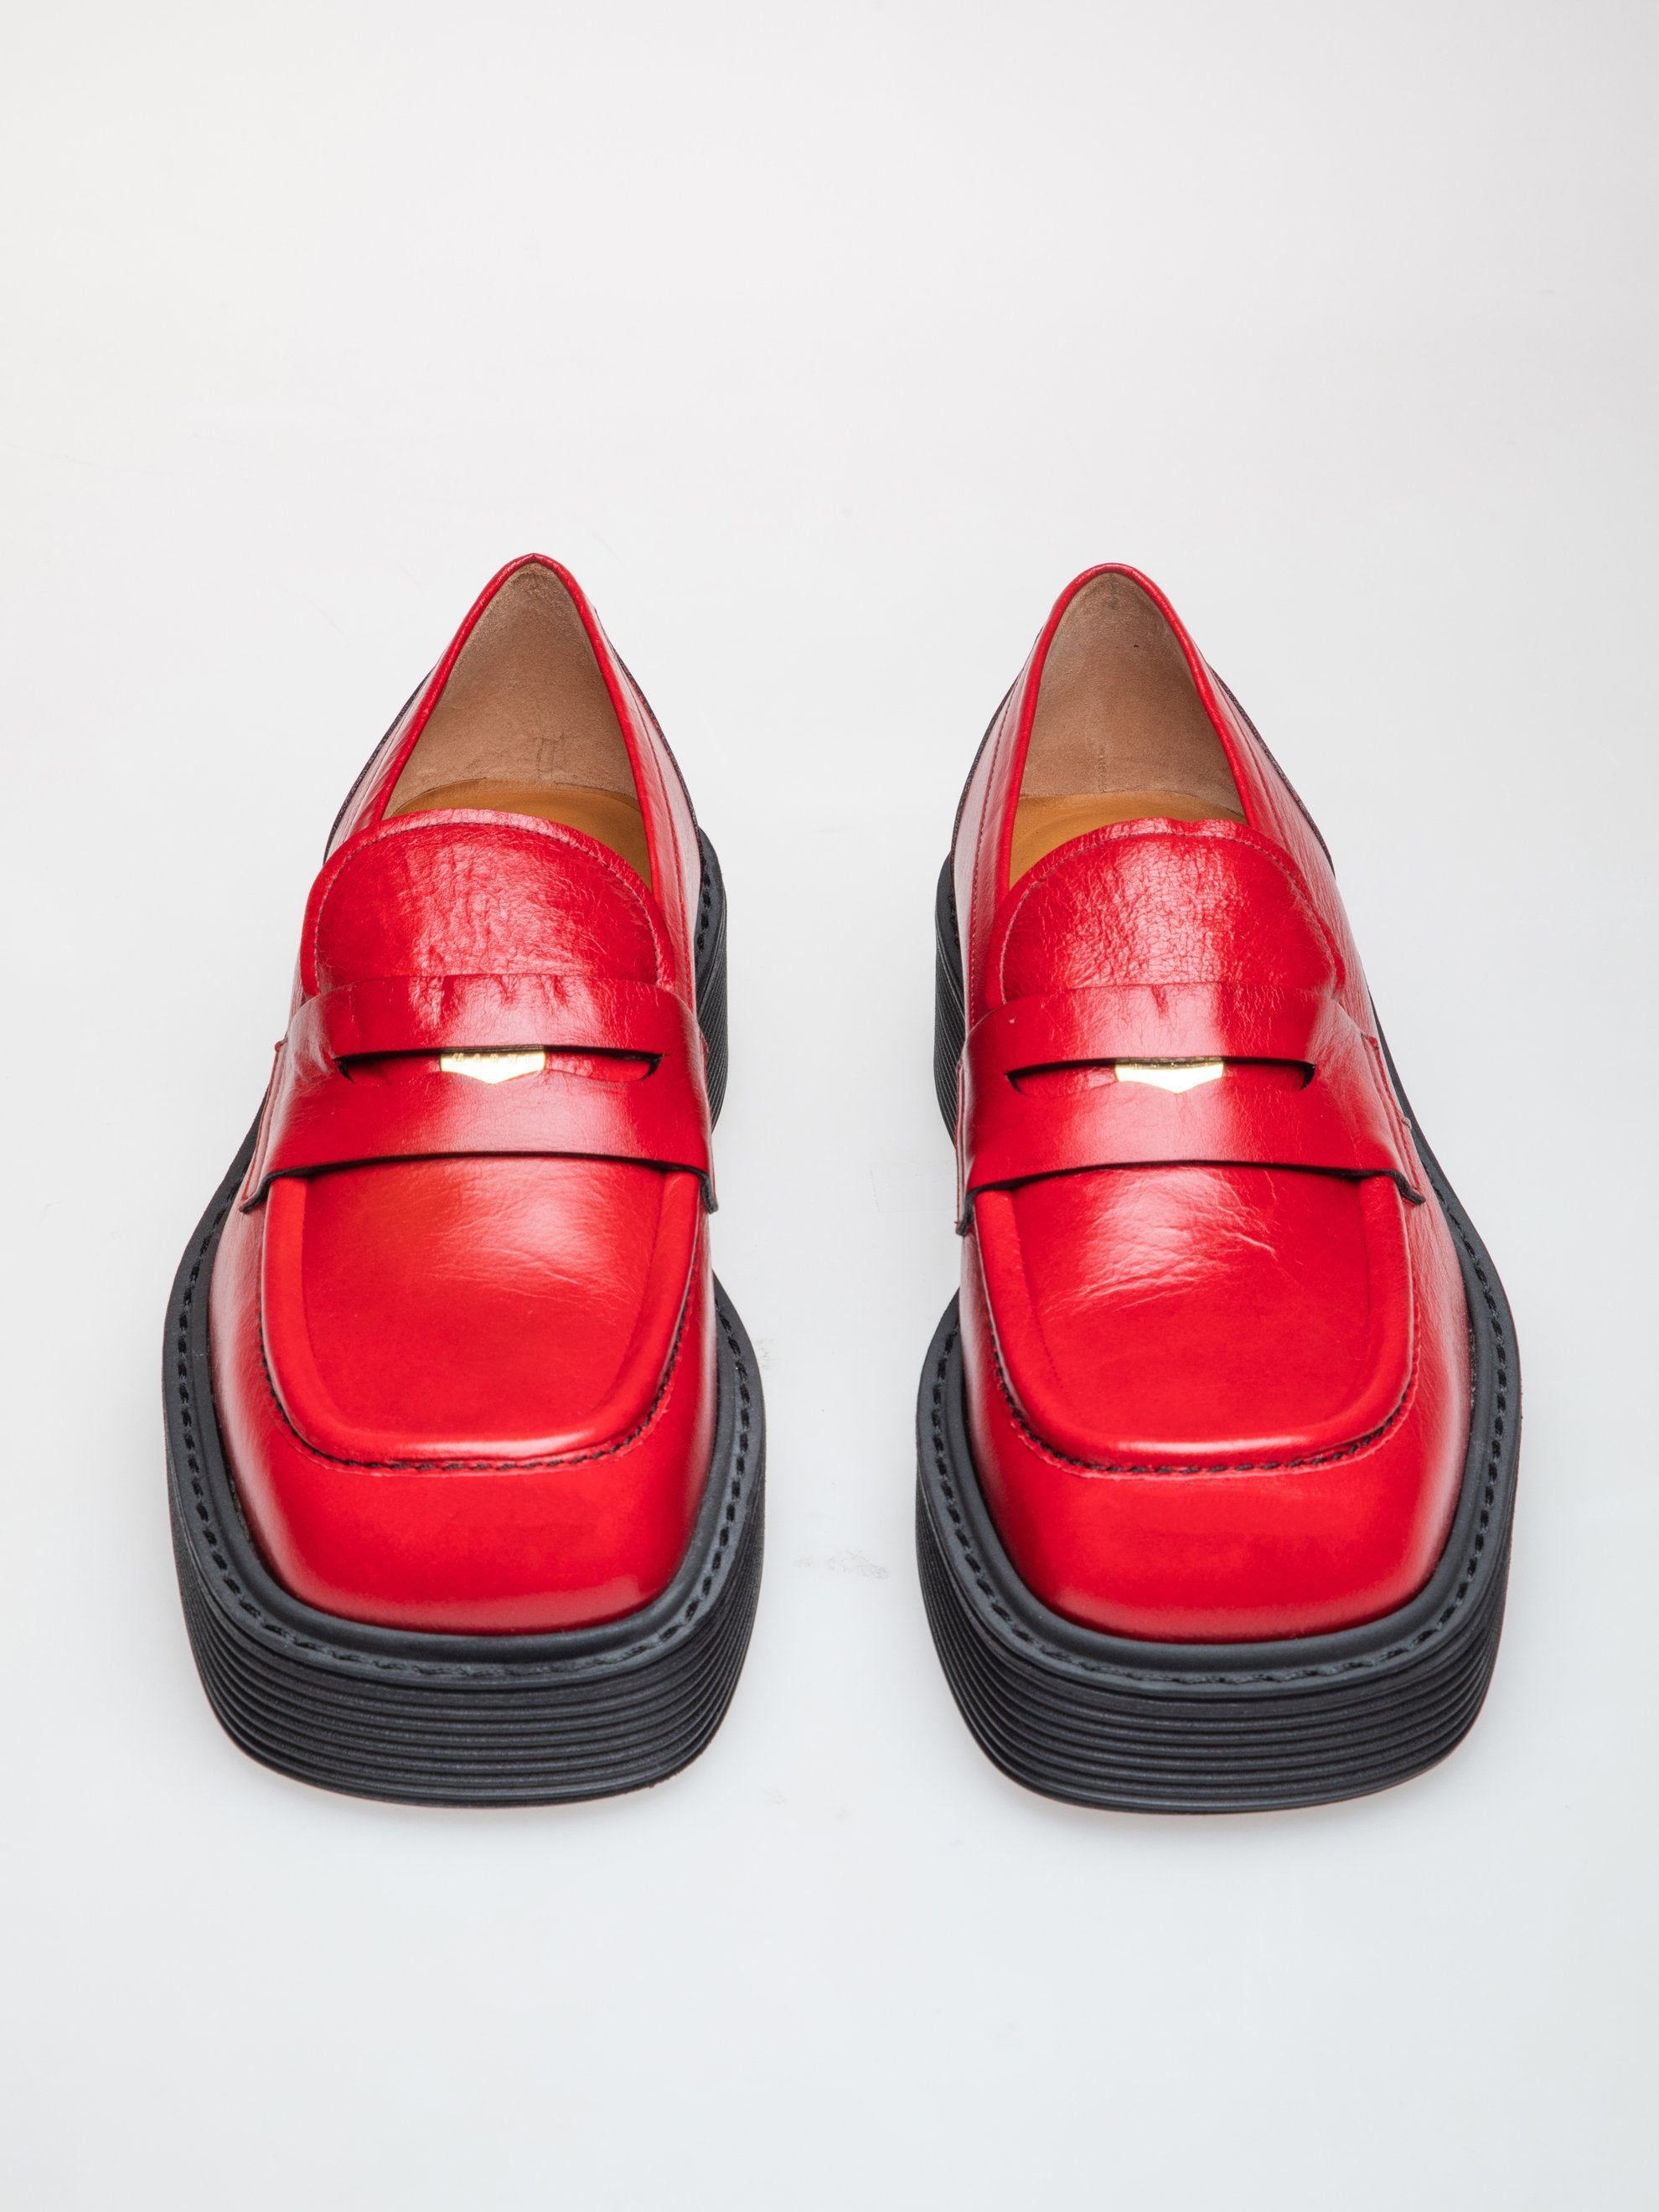 Moccasin Penny Loafer